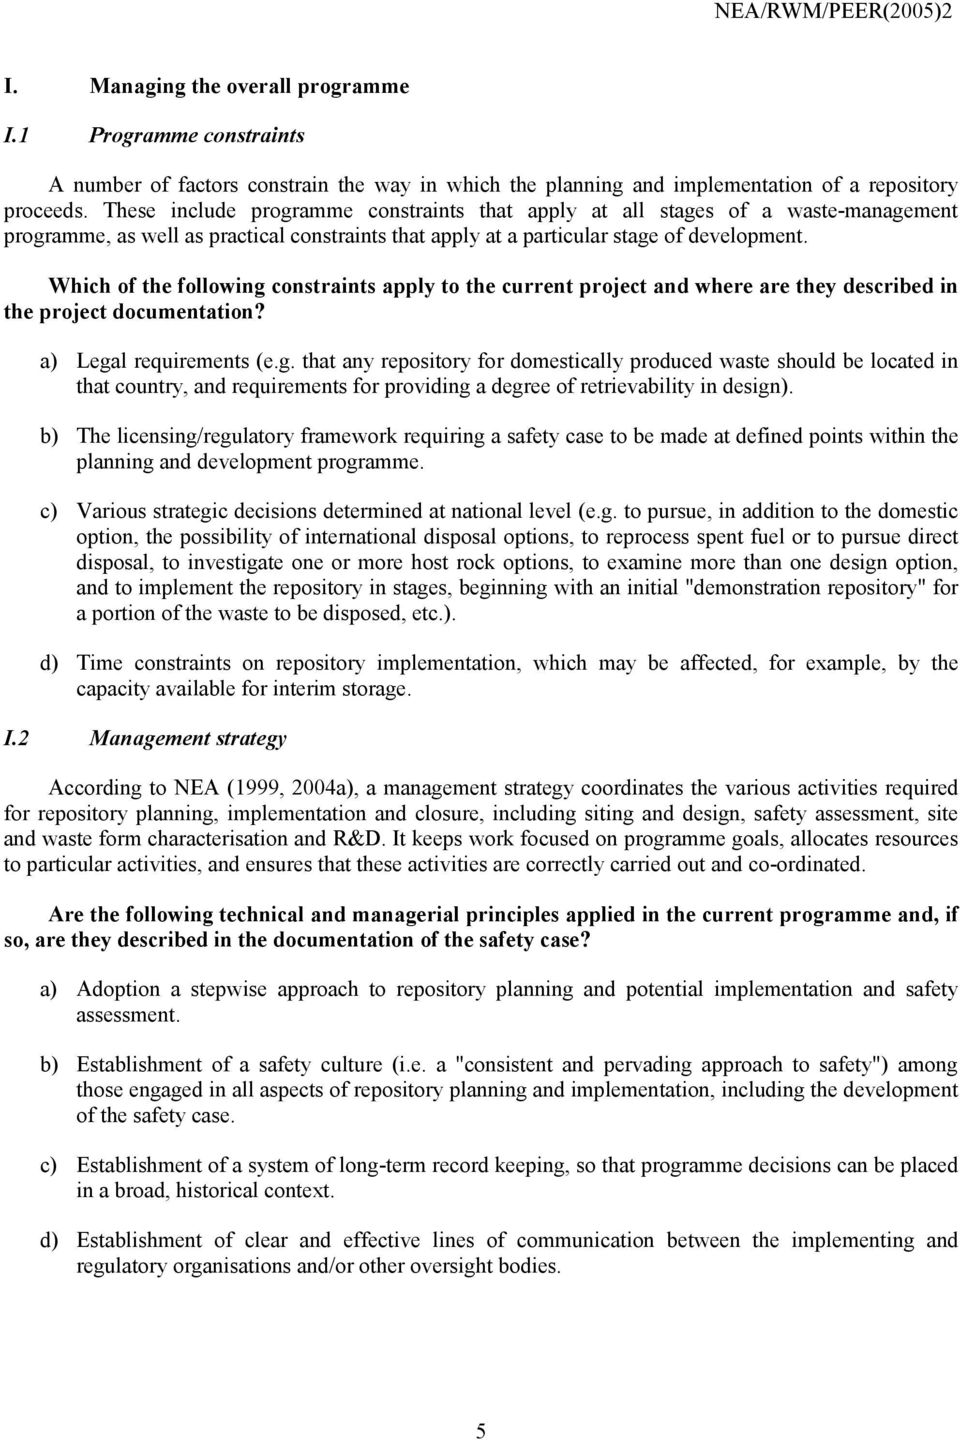 Which of the following constraints apply to the current project and where are they described in the project documentation? a) Legal requirements (e.g. that any repository for domestically produced waste should be located in that country, and requirements for providing a degree of retrievability in design).